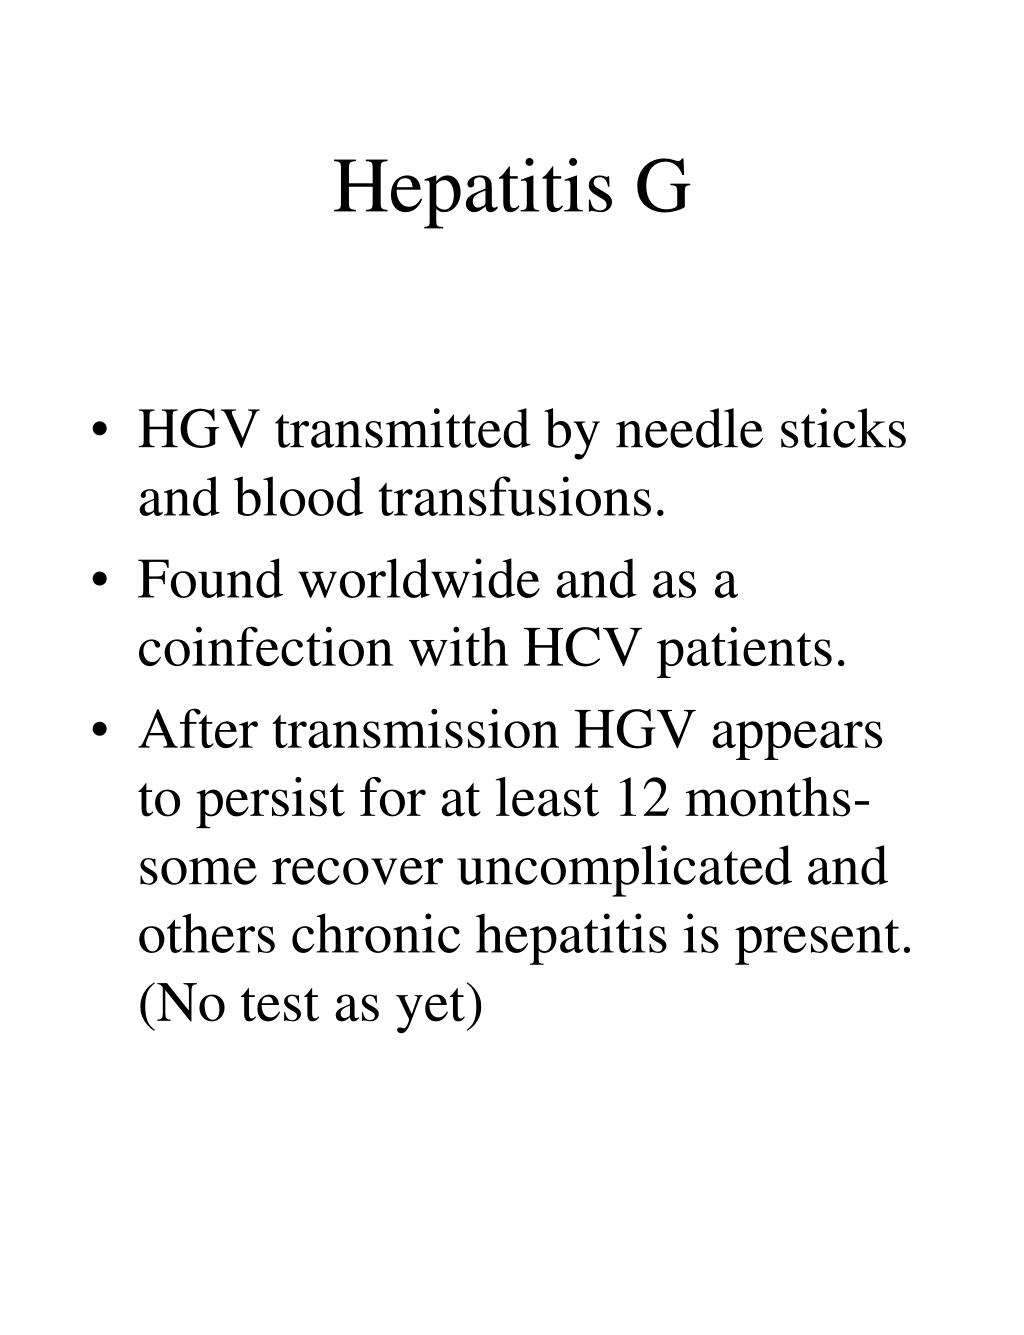 Hepatitis G